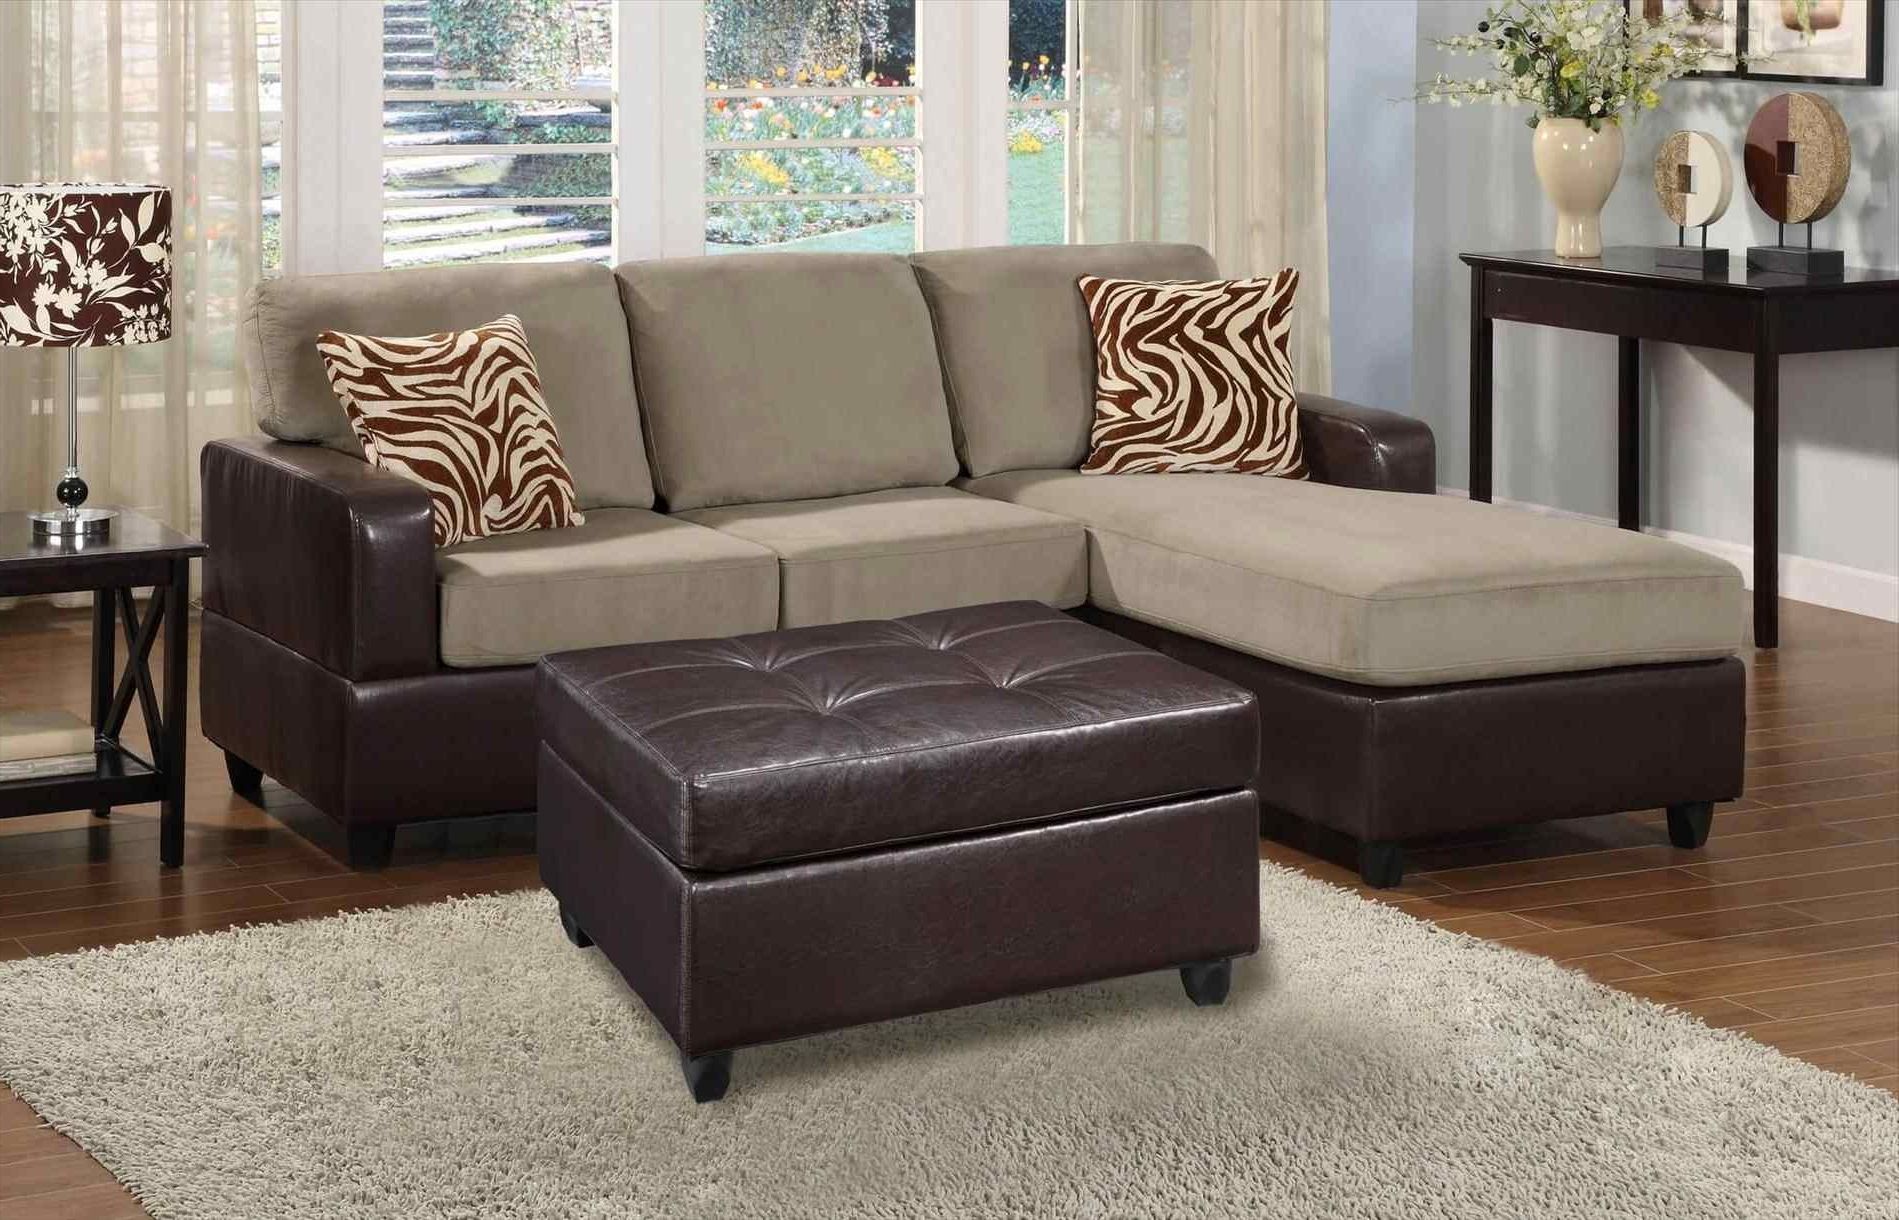 Widely Used Sectional Sofas At Bad Boy Within Couch : Ottomans Wrap Around Couch Unusual Design Large Sectional (View 12 of 20)